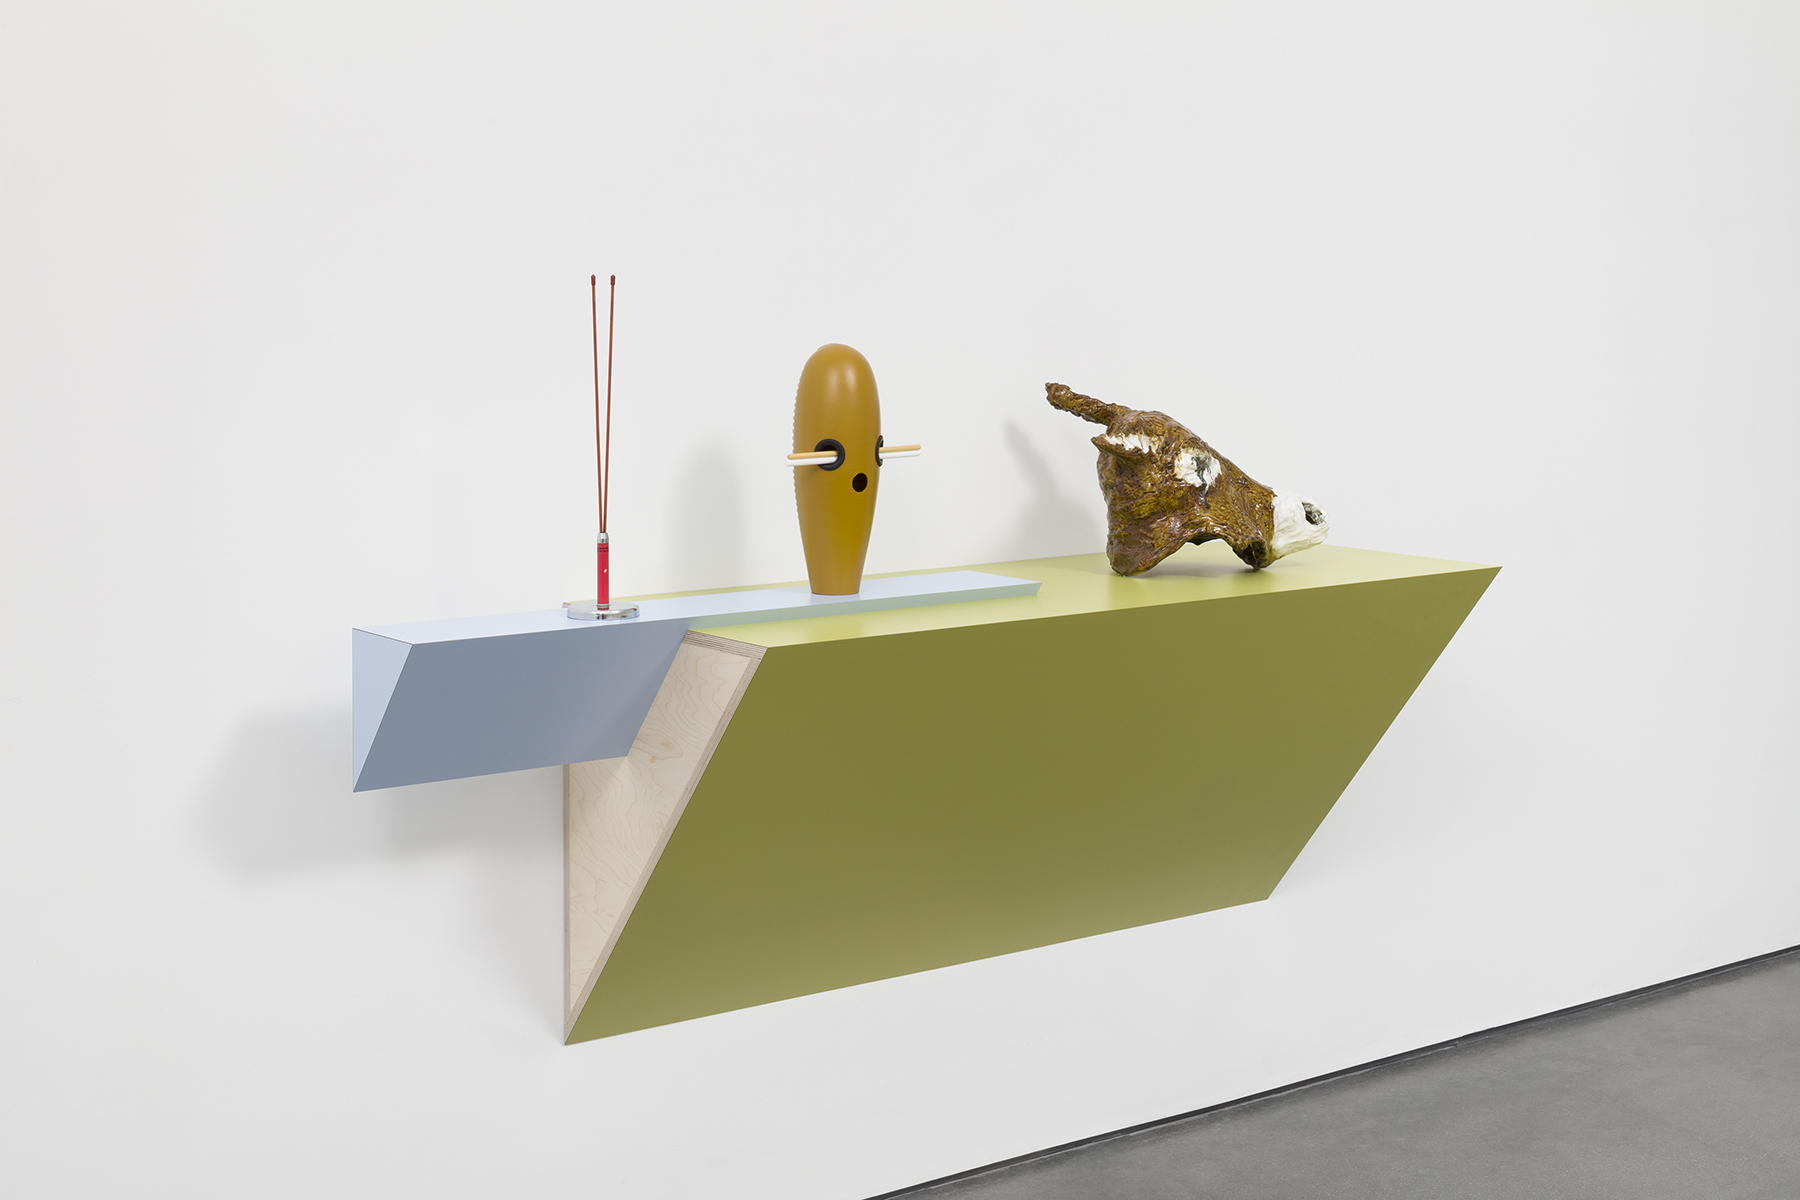 "closed at sunset except for fishing , 2019, Plastic laminated wood shelf, CB radio antenna, plastic Latin Percussion ""Super G¸iroî, plastic G¸iro scrapers, ceramic donkey head, 43 5/8 x 71 x 21 inches (110.8 x 180.3 x 53.3 cm). Courtesy of the artist and Tanya Bonakdar Gallery, New York / Los Angeles"